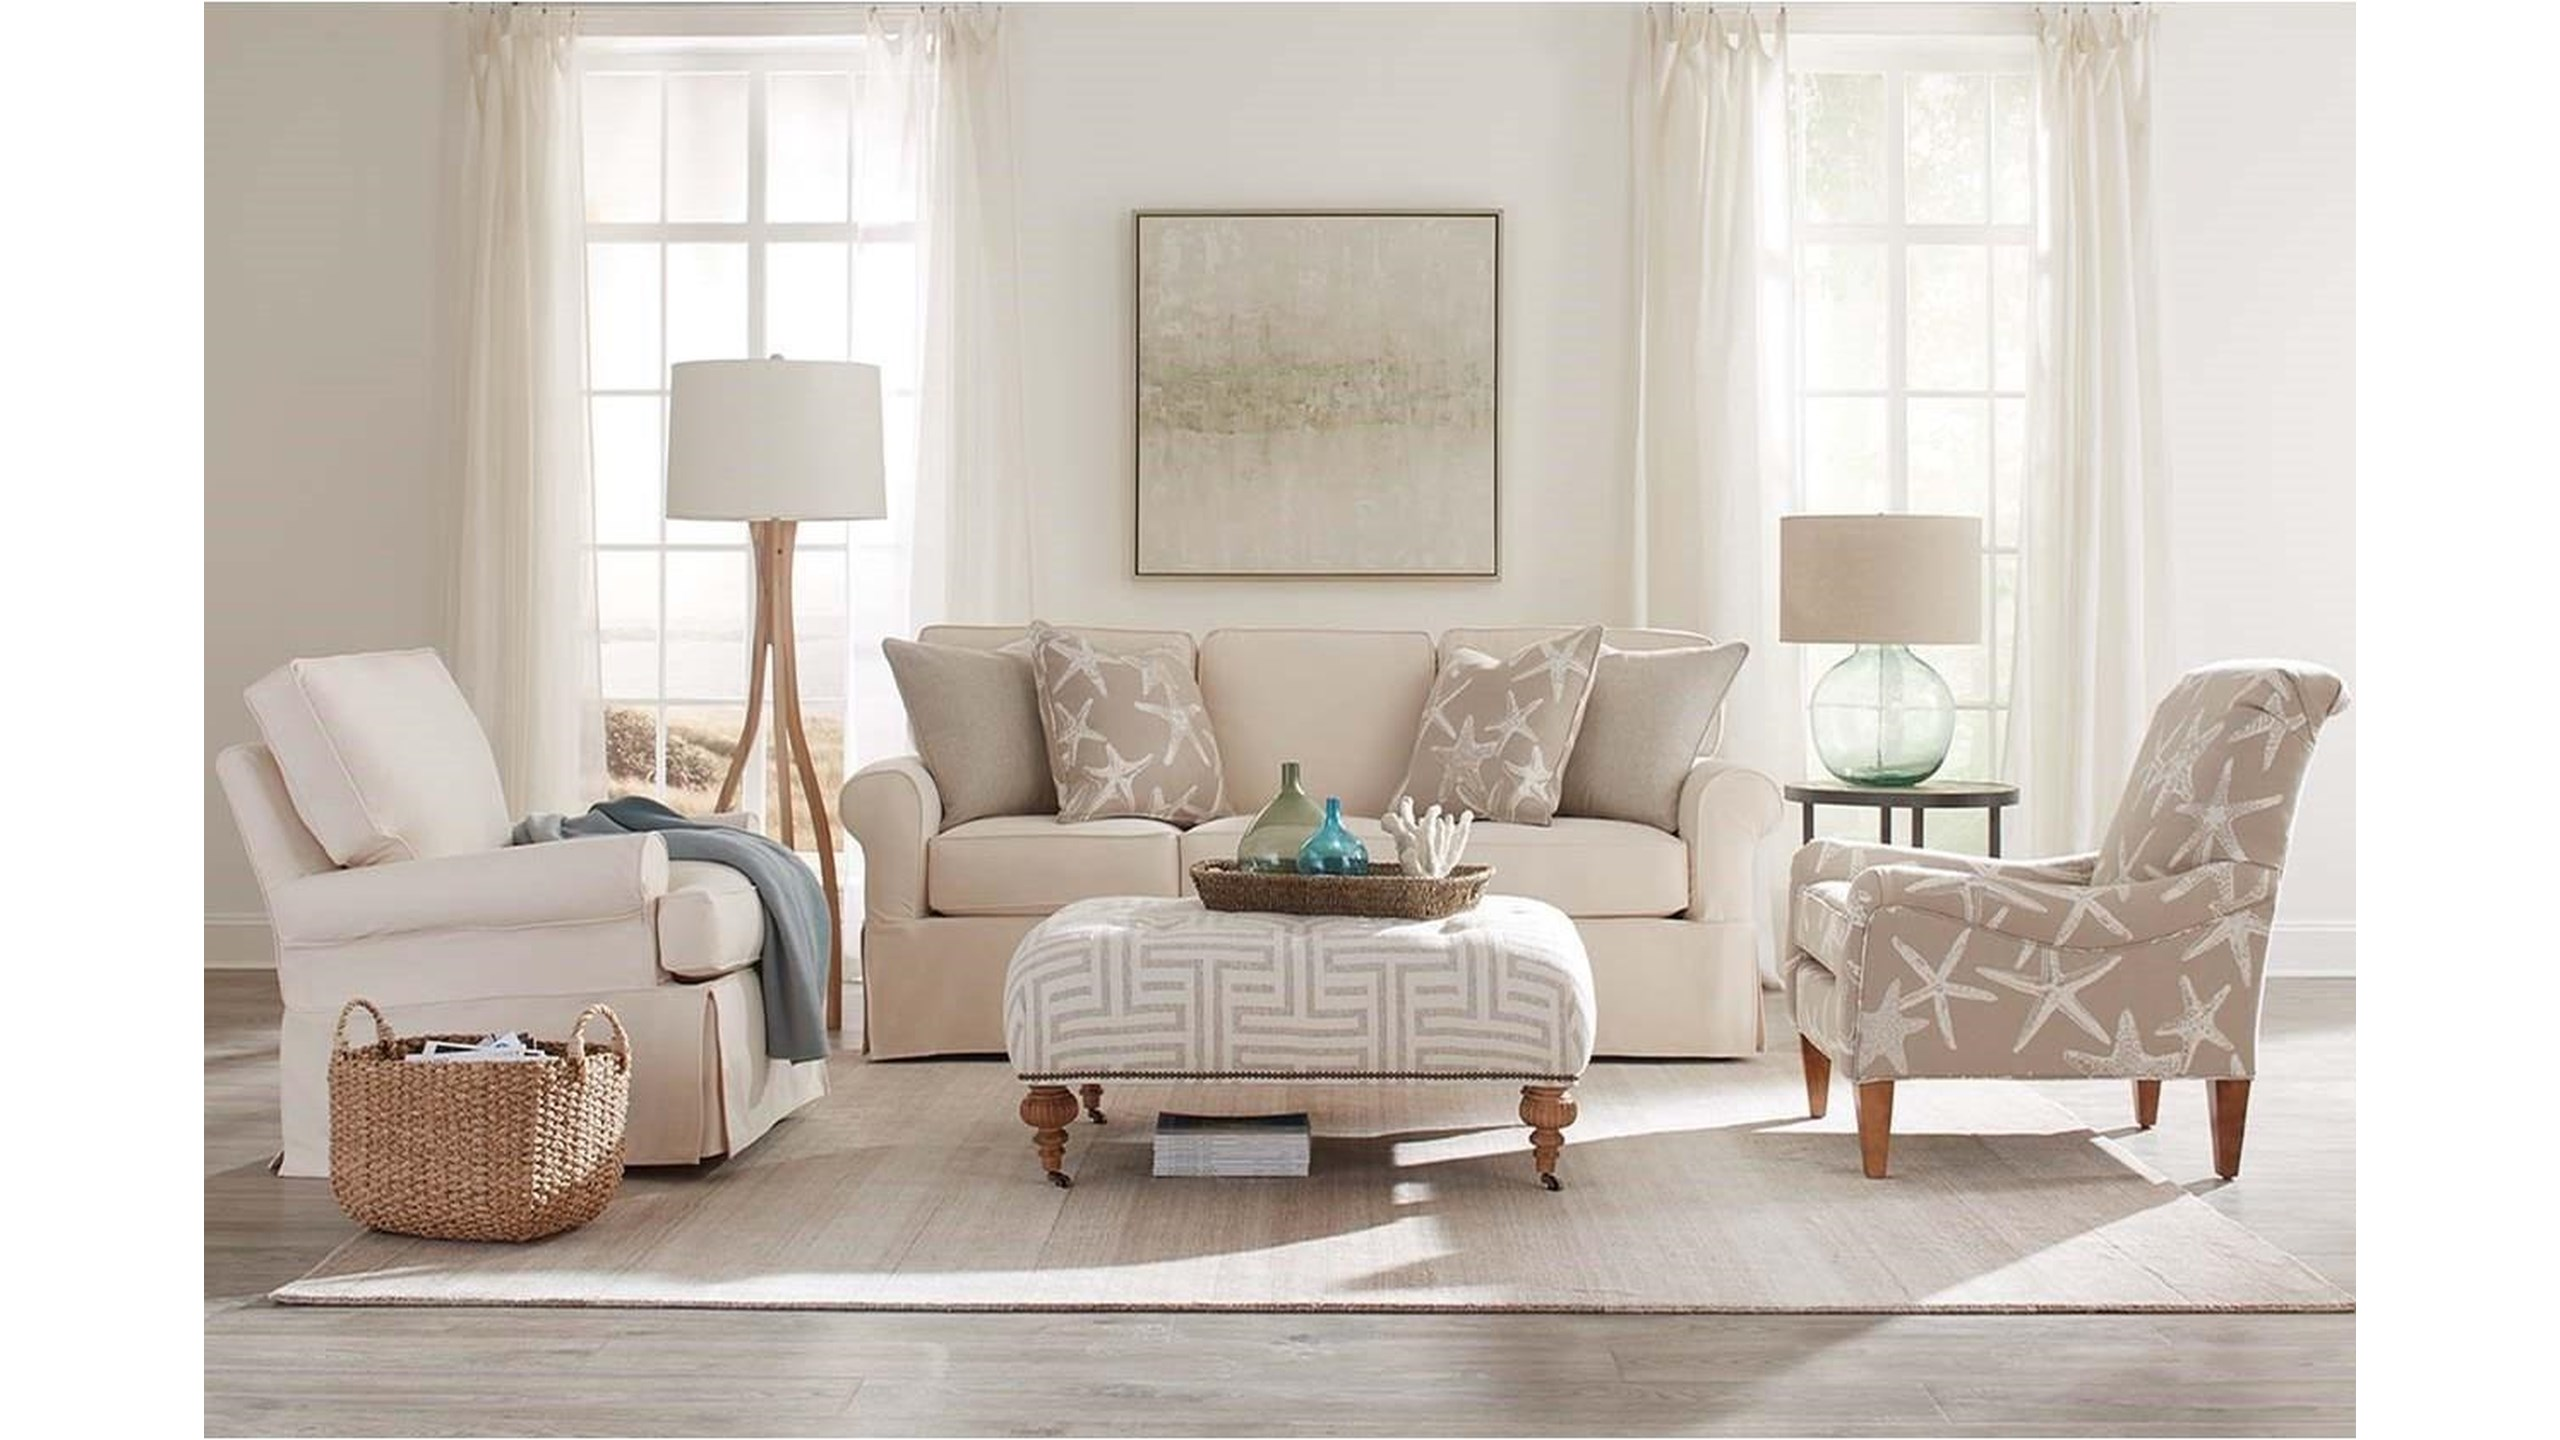 Create A Relaxed Feel With Beach Style Furniture And Decor Baer S Furniture Ft Lauderdale Ft Myers Orlando Naples Miami Florida